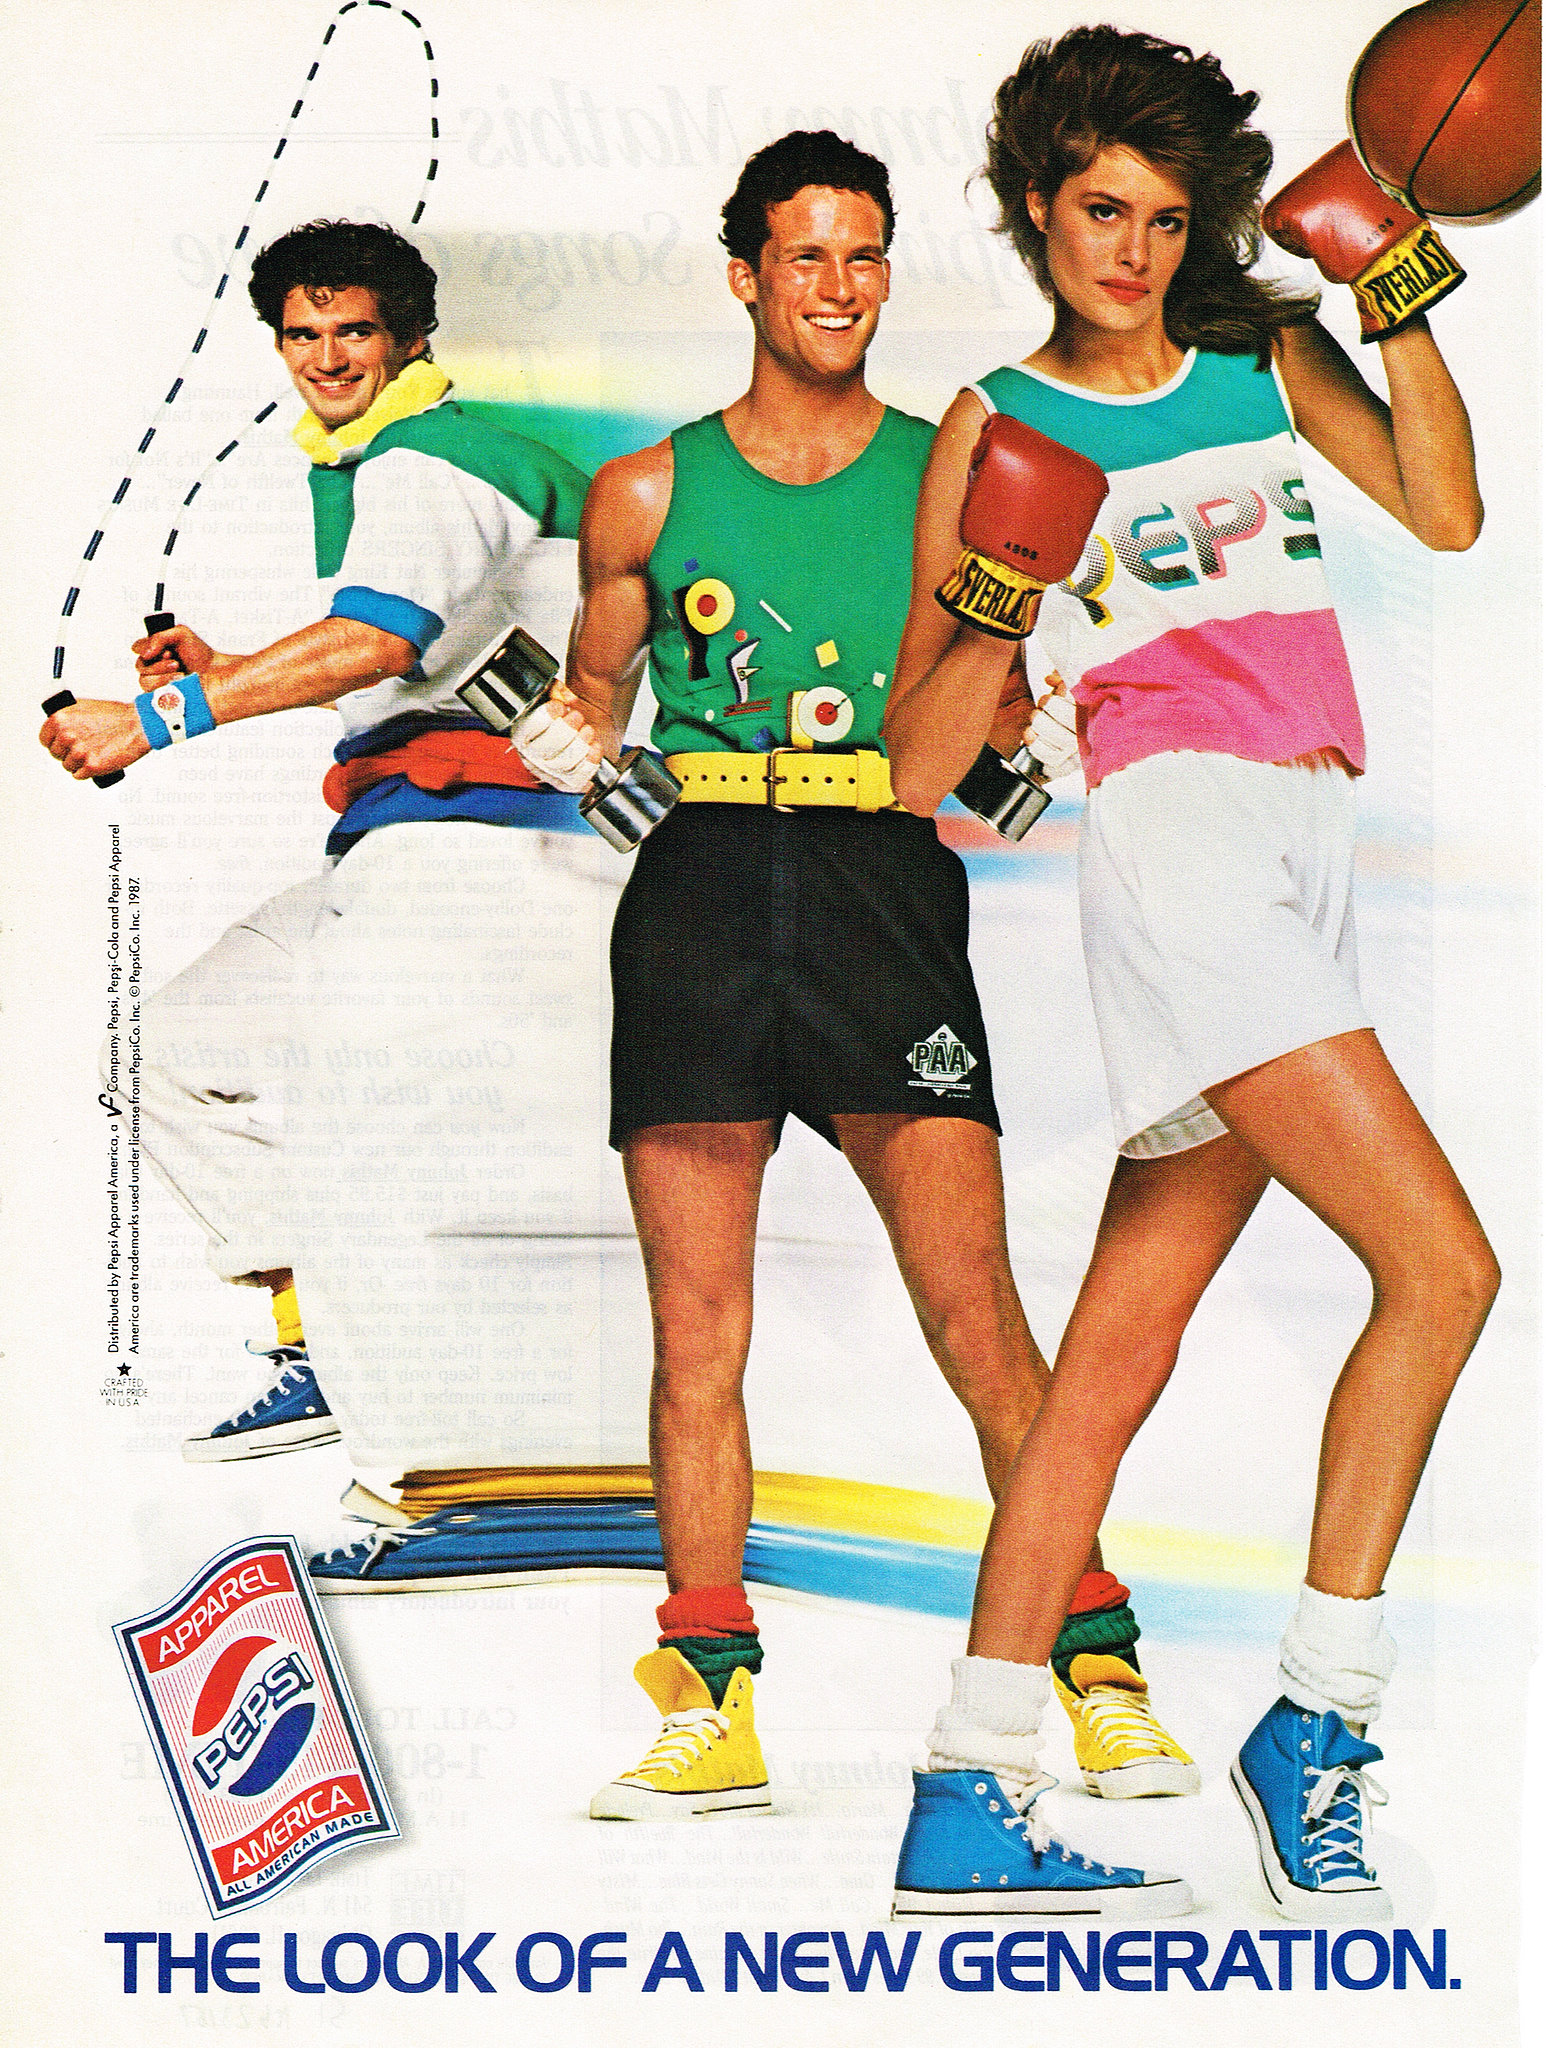 Get your '80s boxing gear ready.